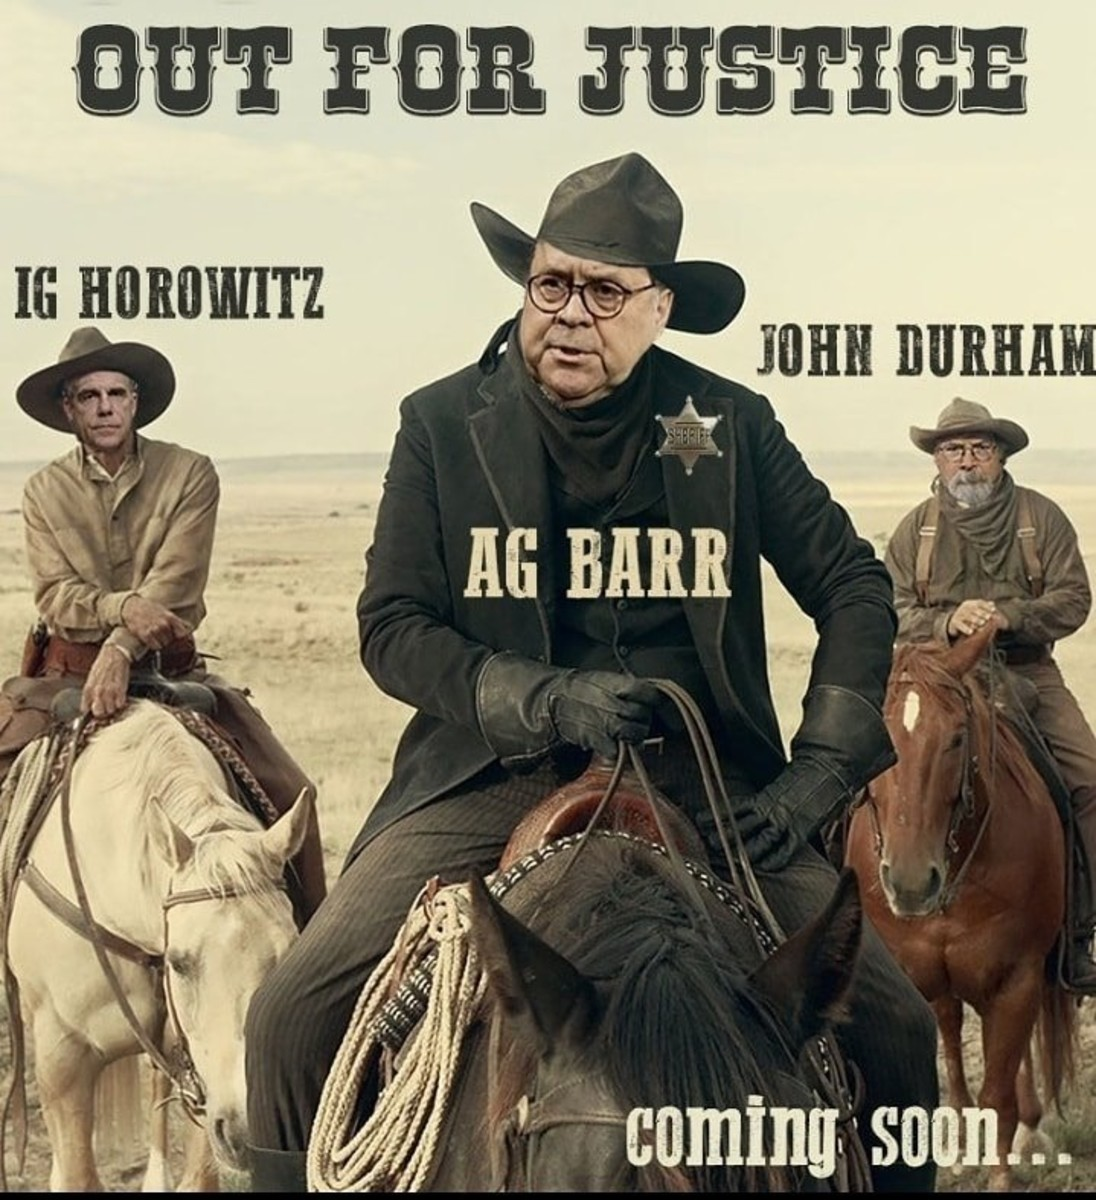 Here Comes the Posse; Justice Will Finally Be Served